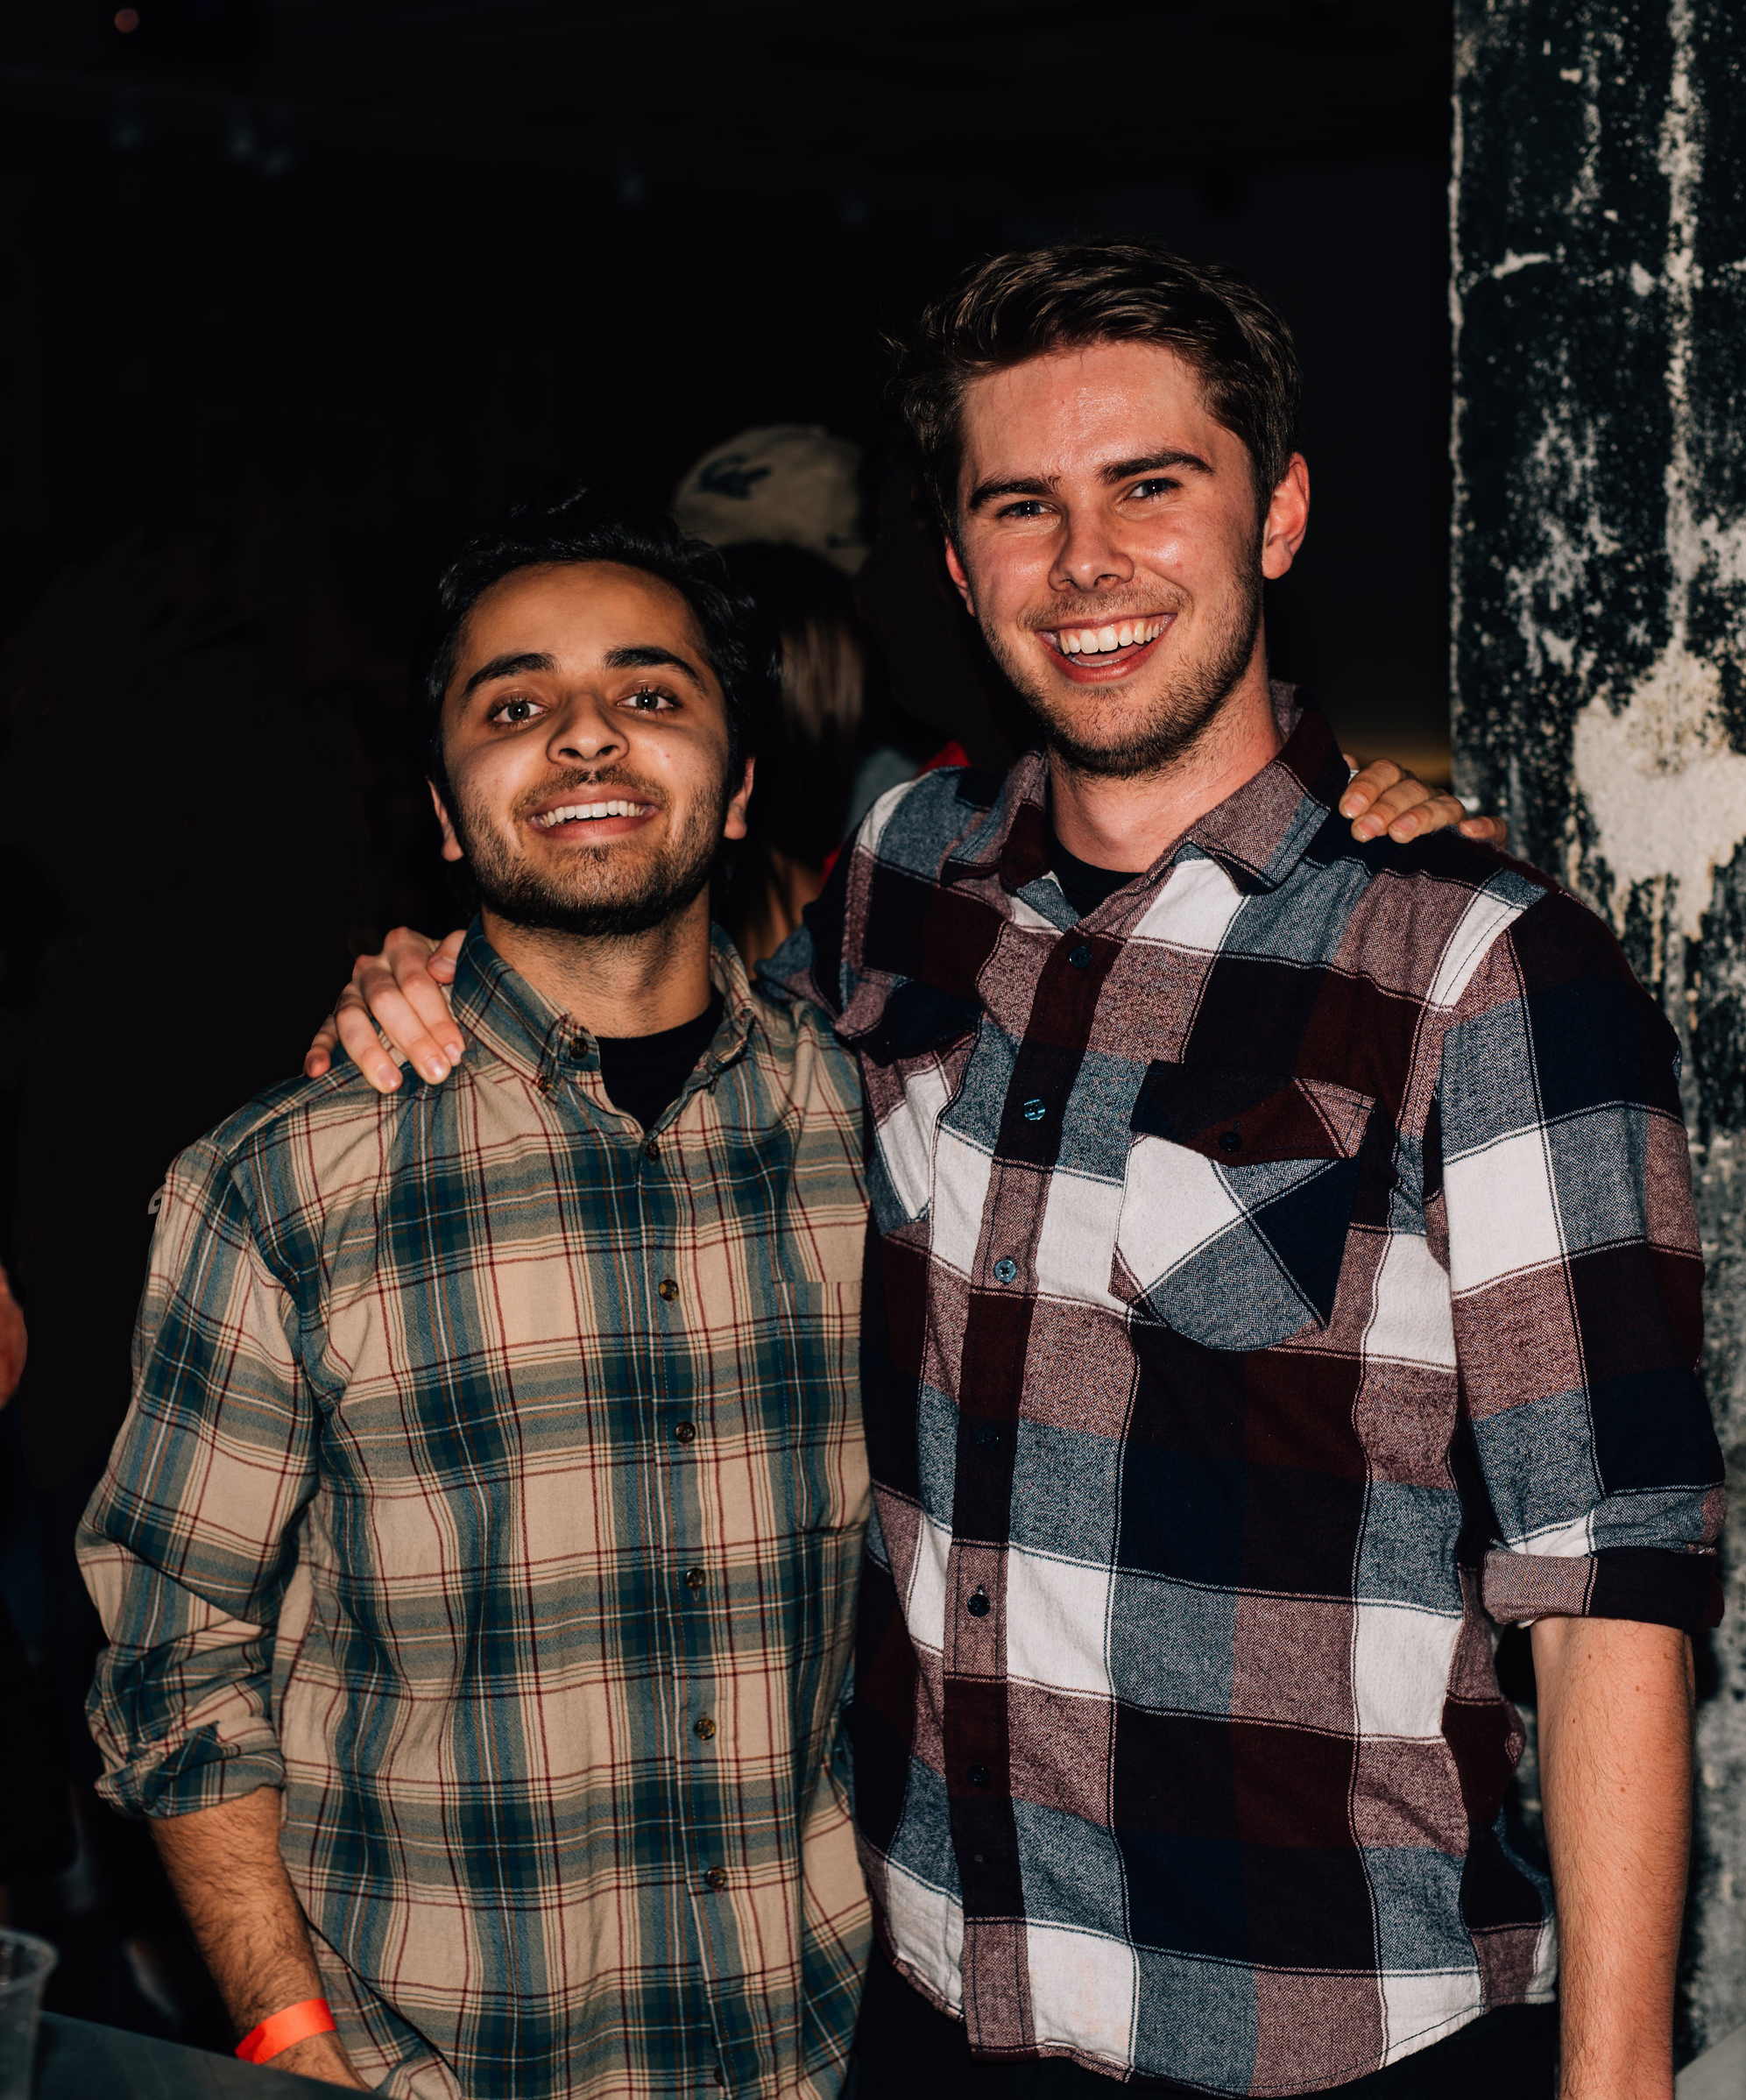 Akbar Khan (left) and Jack Connolly (right) having a good time in Berkeley.